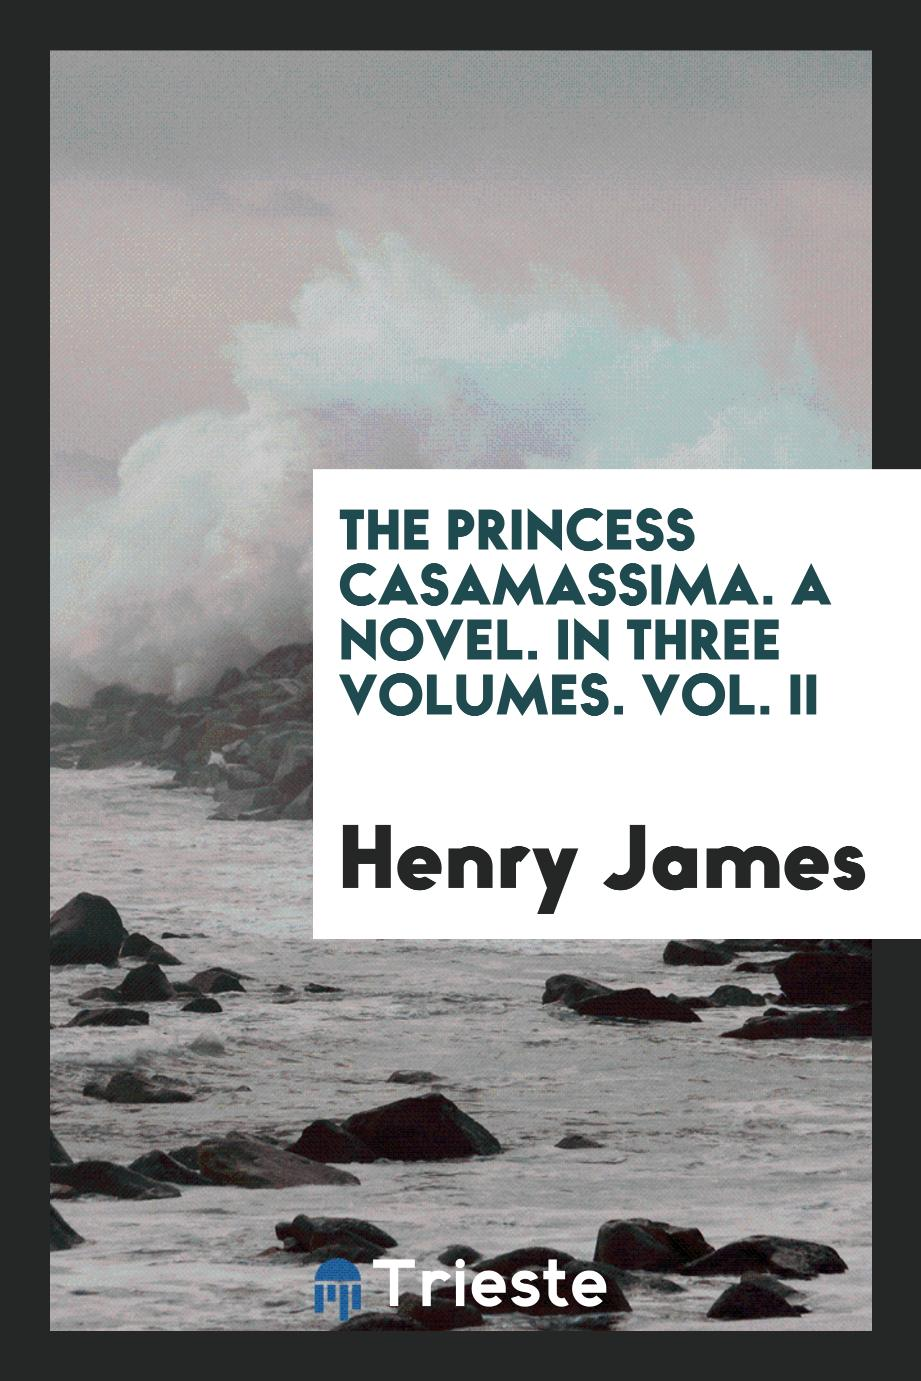 Henry James - The Princess Casamassima. A novel. In Three volumes. Vol. II